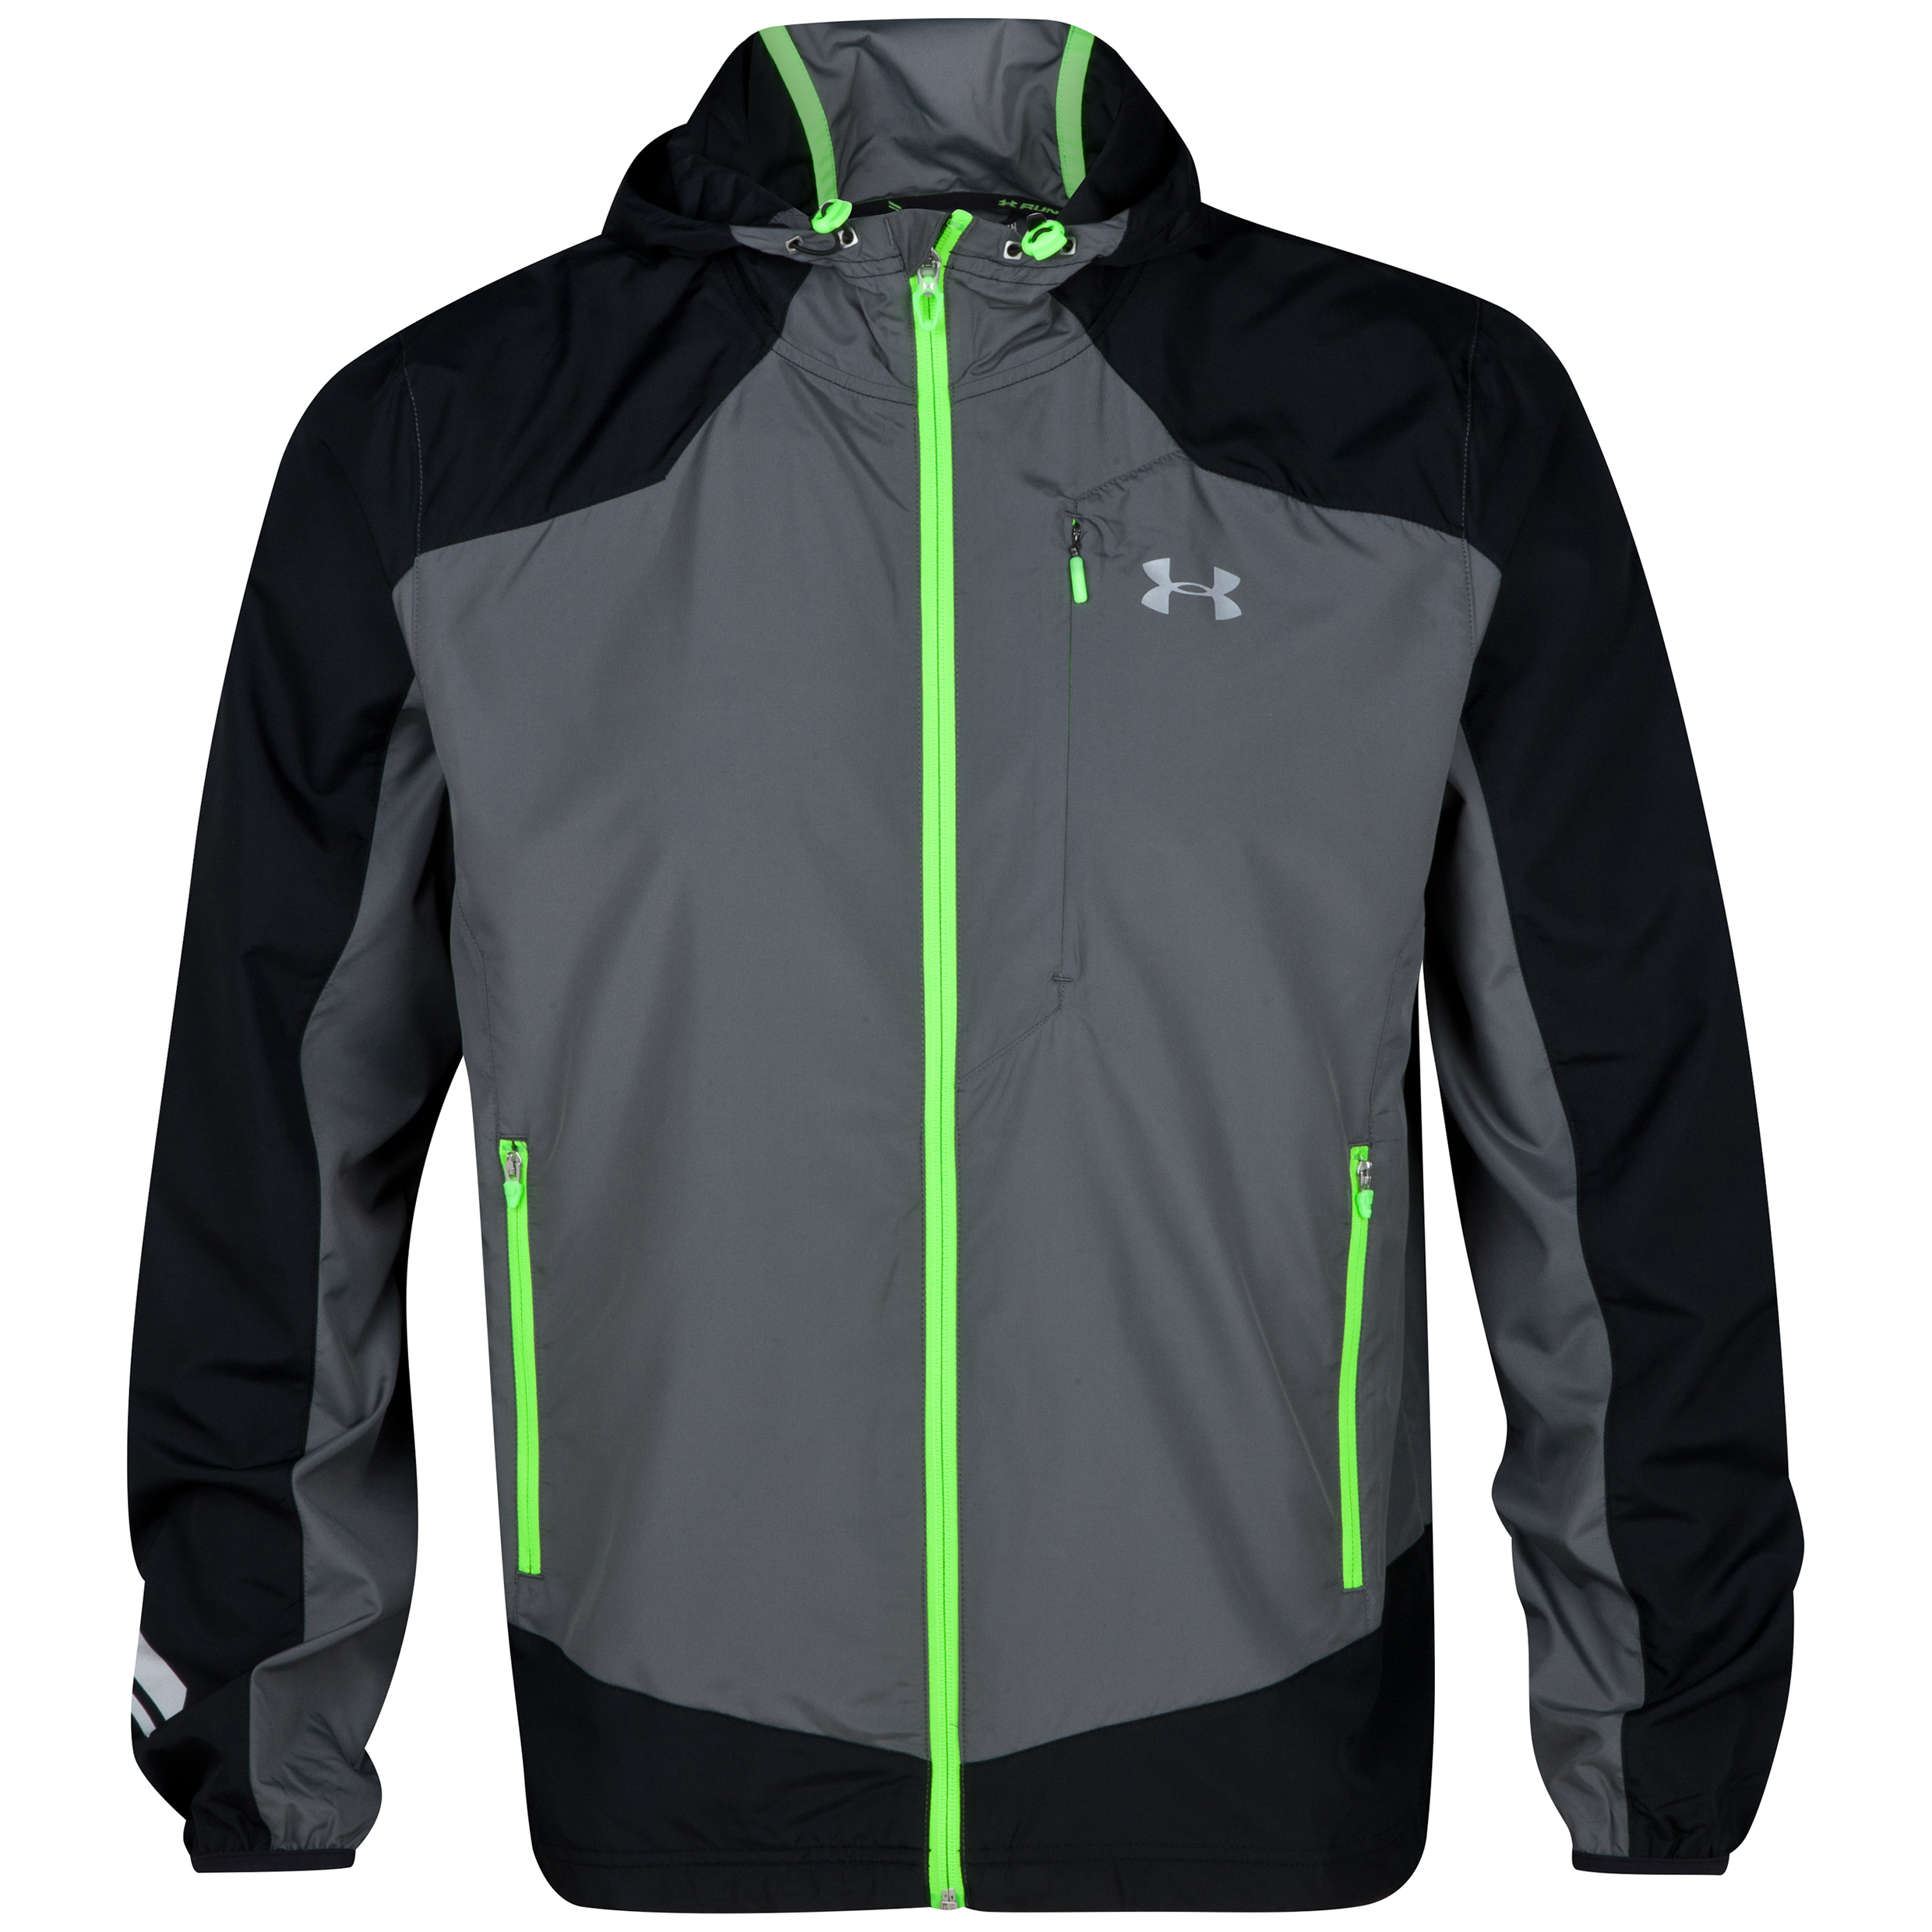 Running Under Armour Imminent Run Jacket - Graphite/Black/Hyper Green Dk Grey